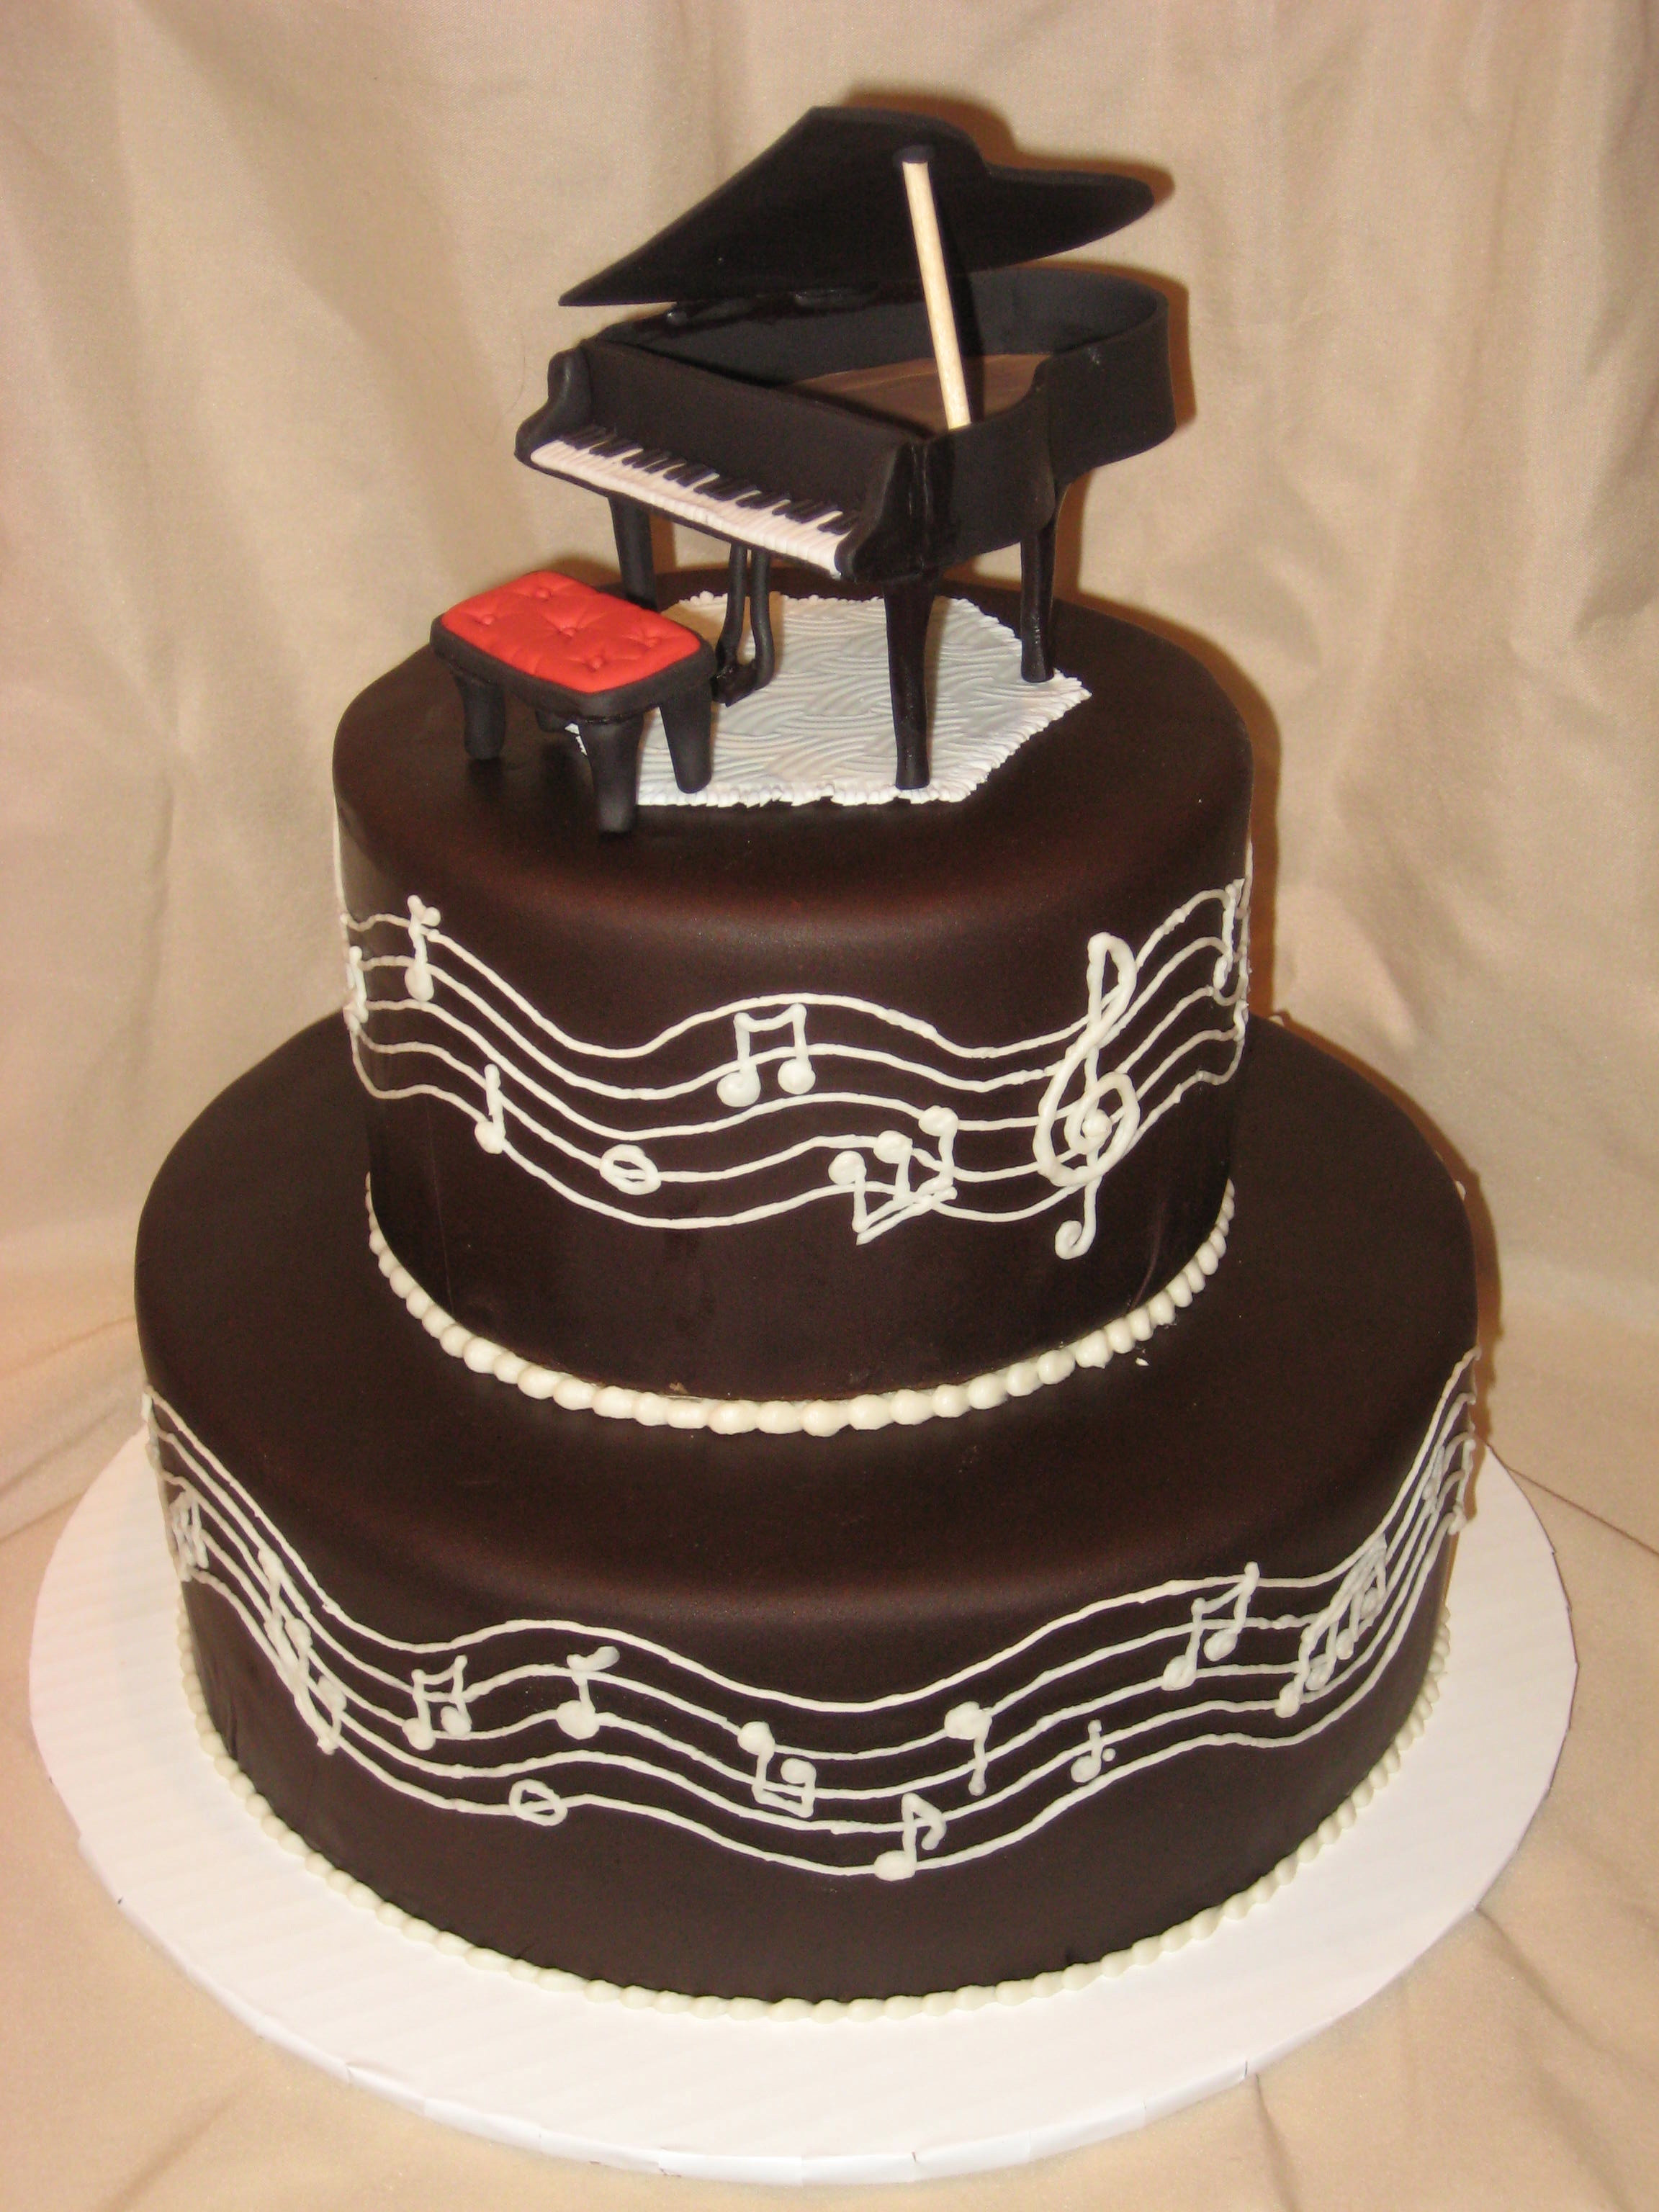 Best ideas about Piano Birthday Cake . Save or Pin The Piano Cake Now.